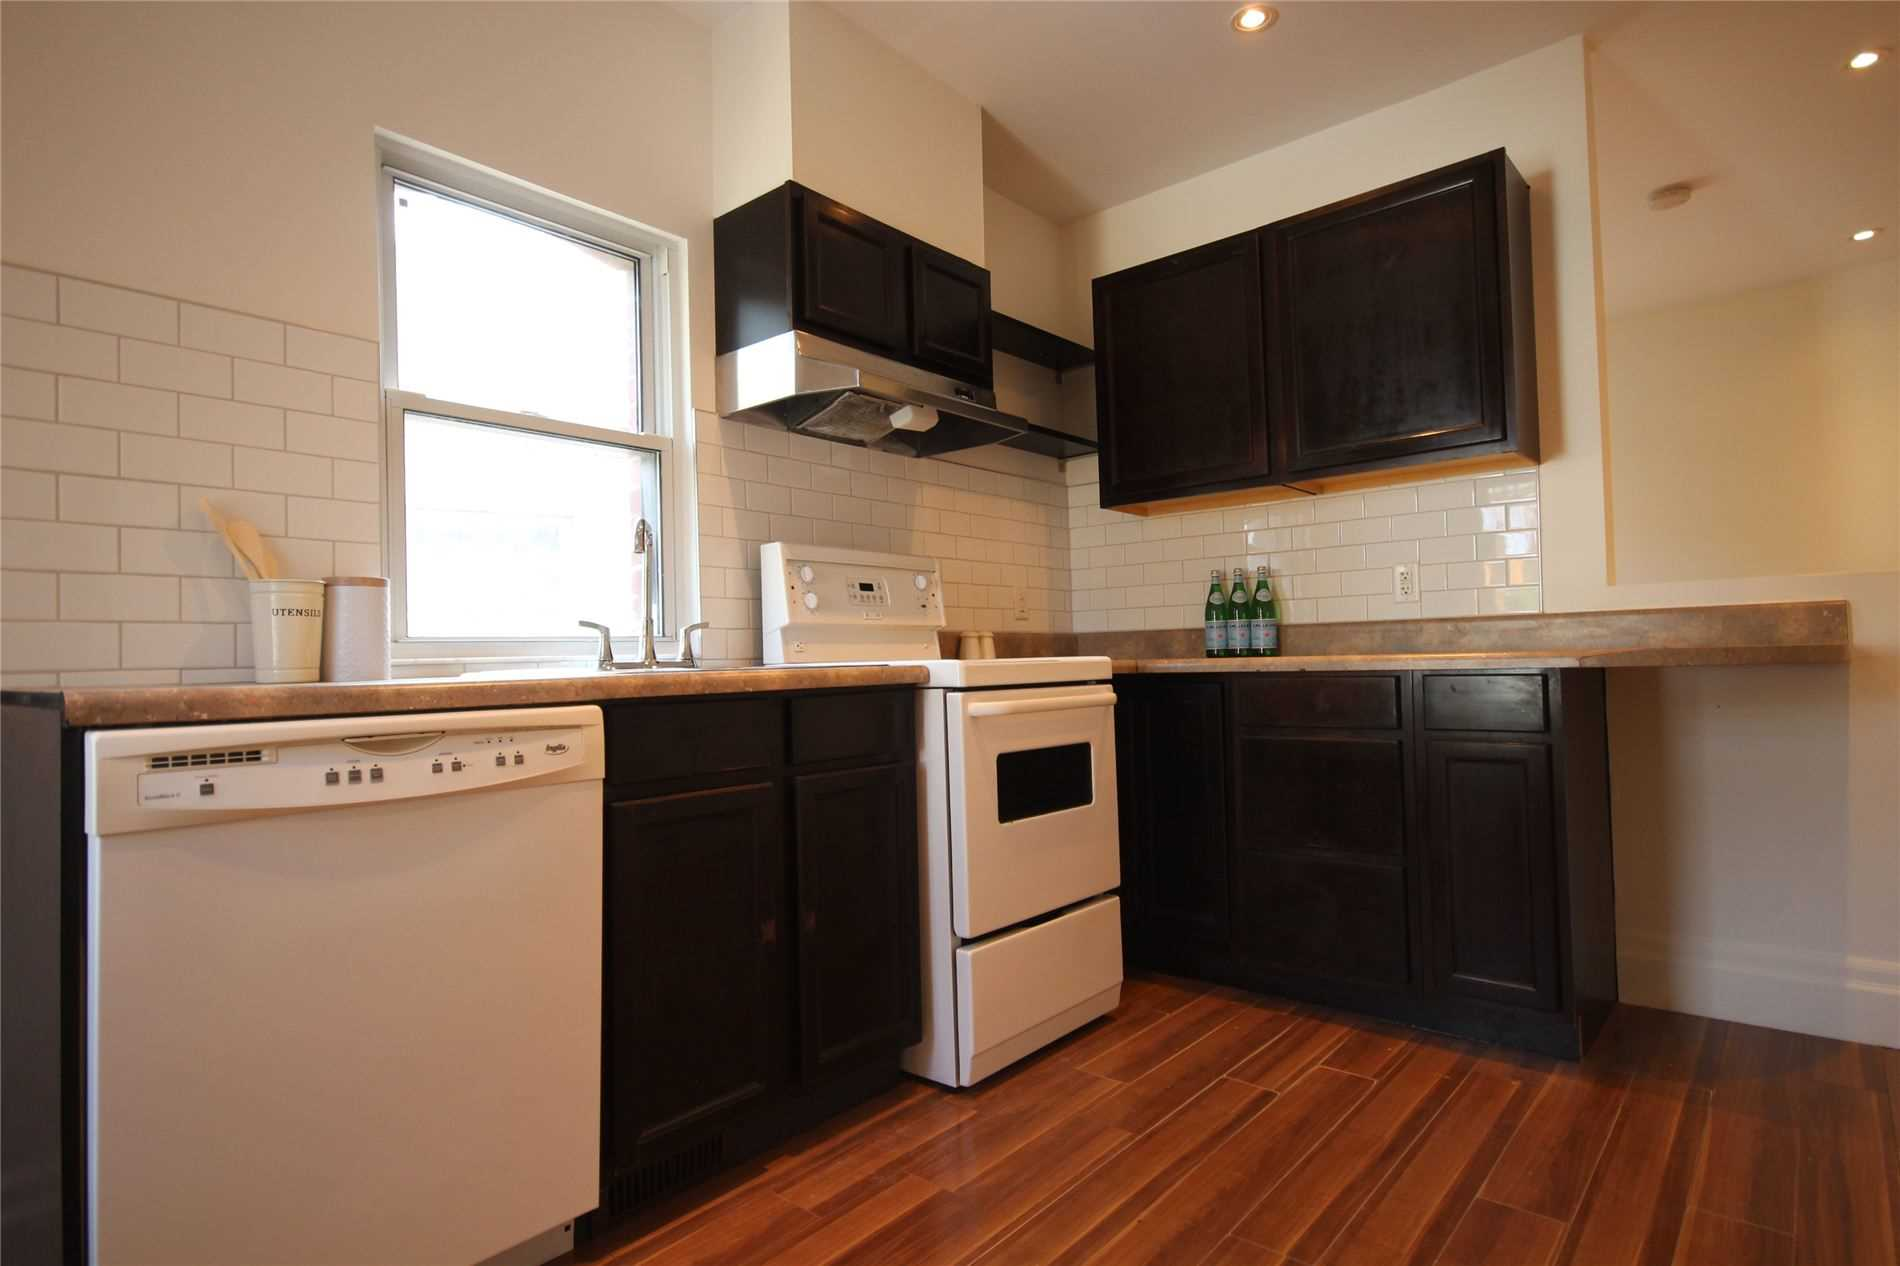 Detached house For Lease In Toronto - 2 Eileen Ave, Toronto, Ontario, Canada M6N 1V4 , 1 Bedroom Bedrooms, ,2 BathroomsBathrooms,Detached,For Lease,Eileen